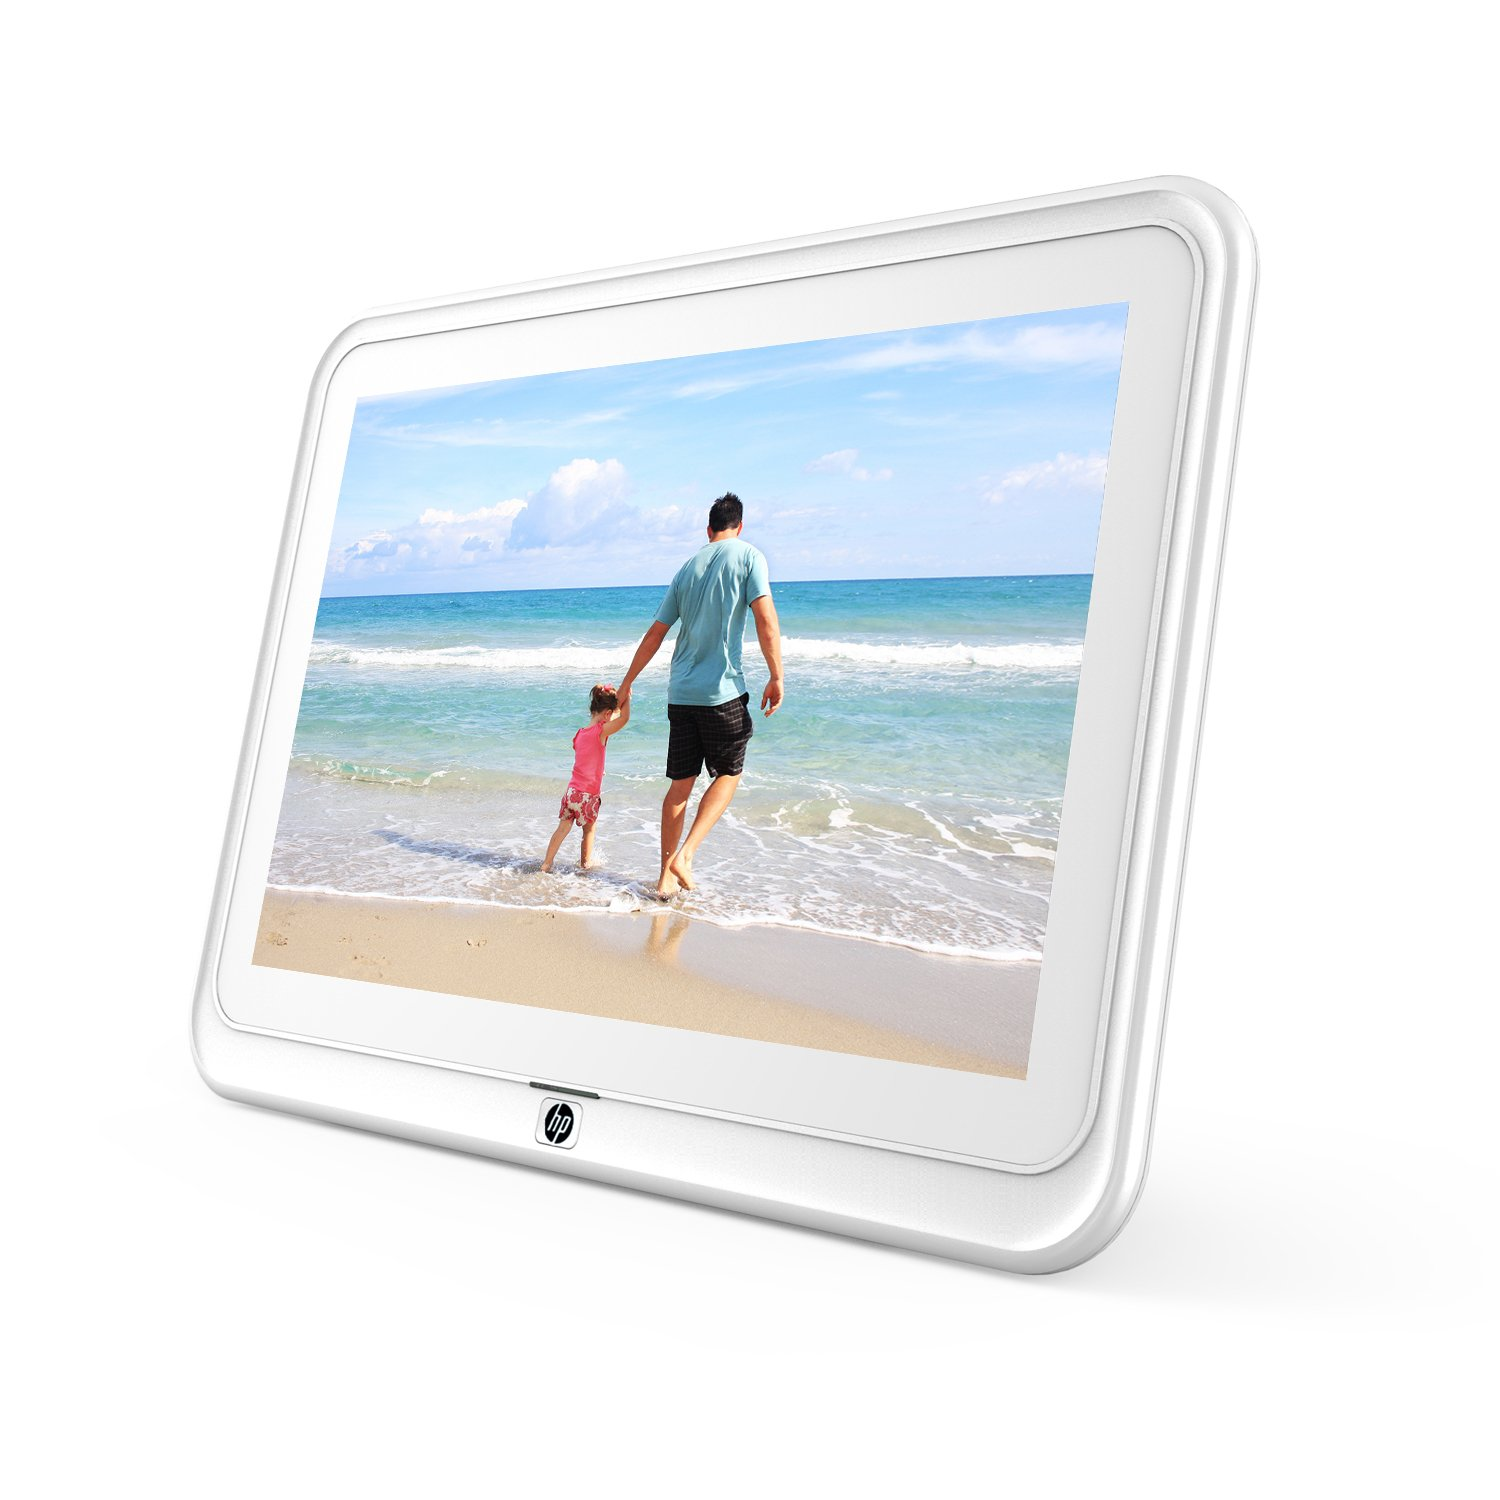 HP df1050tw 10.1 inch WiFi Digital Photo Frame with HD Display, iPhone & Android App, 8GB Internal Storage, SD Card, Memory Drive Slots, Stereo Speakers - White